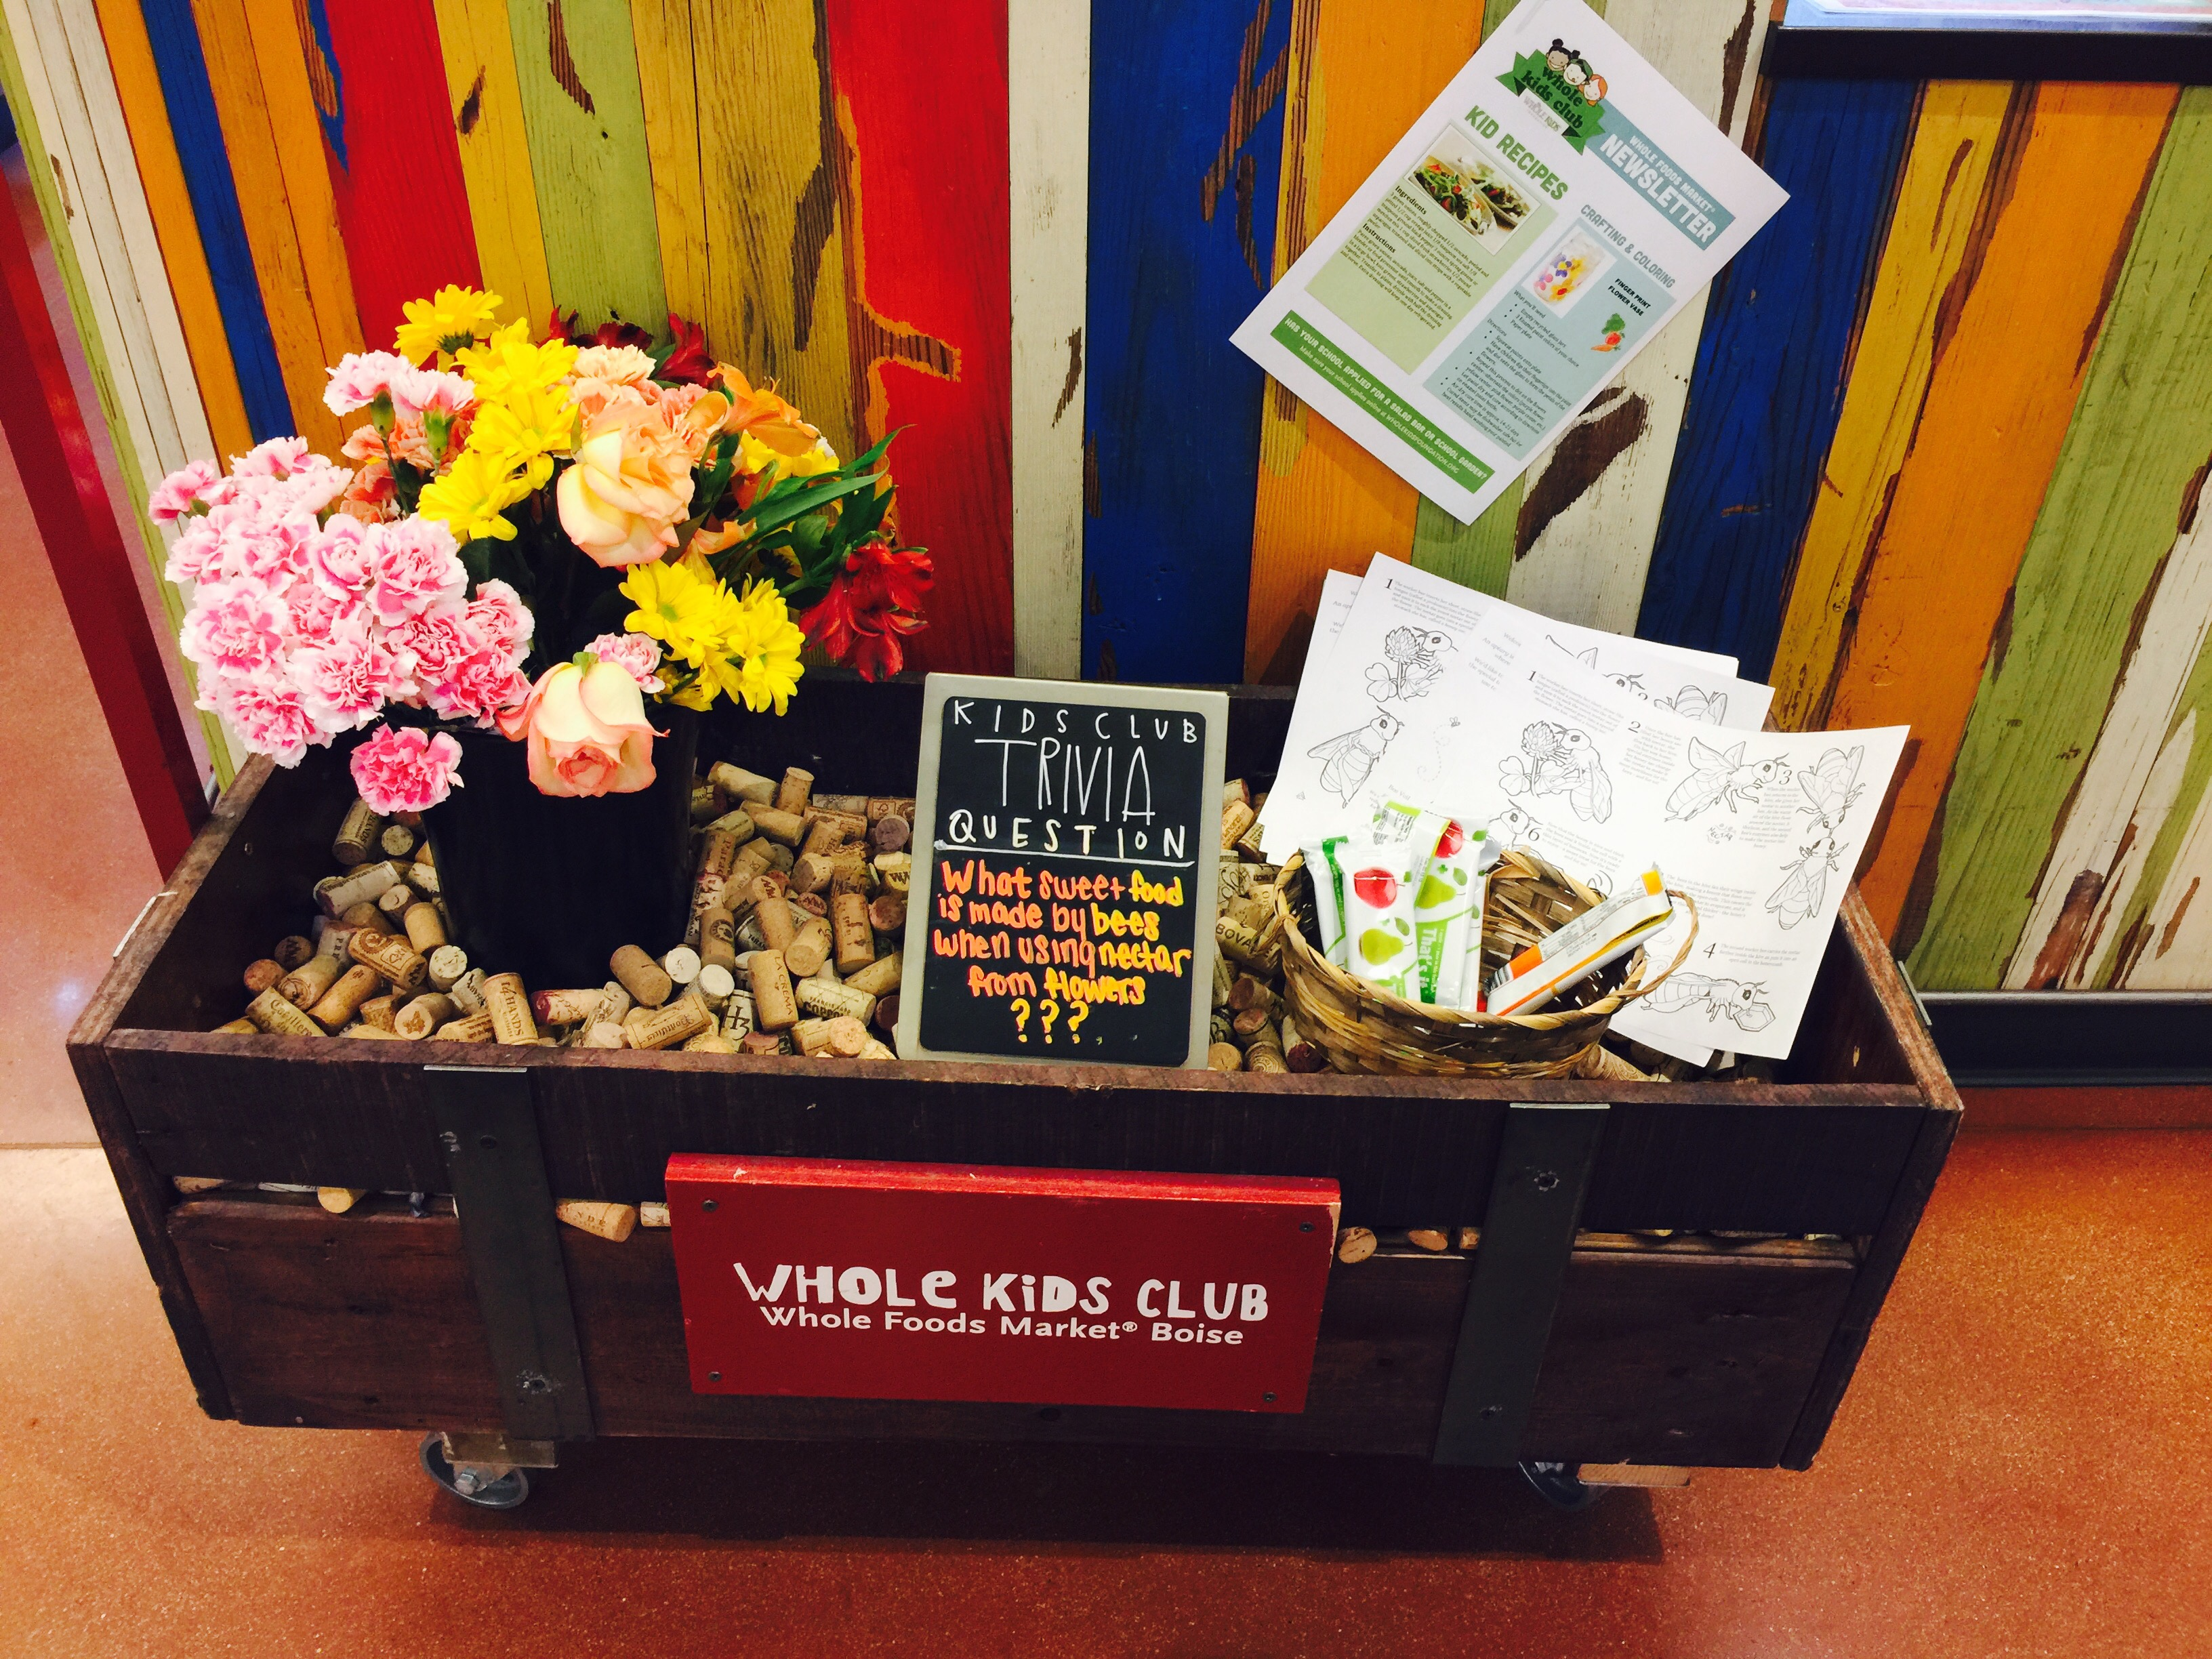 money-saving hacks at Whole Foods Market – kids' club in store display